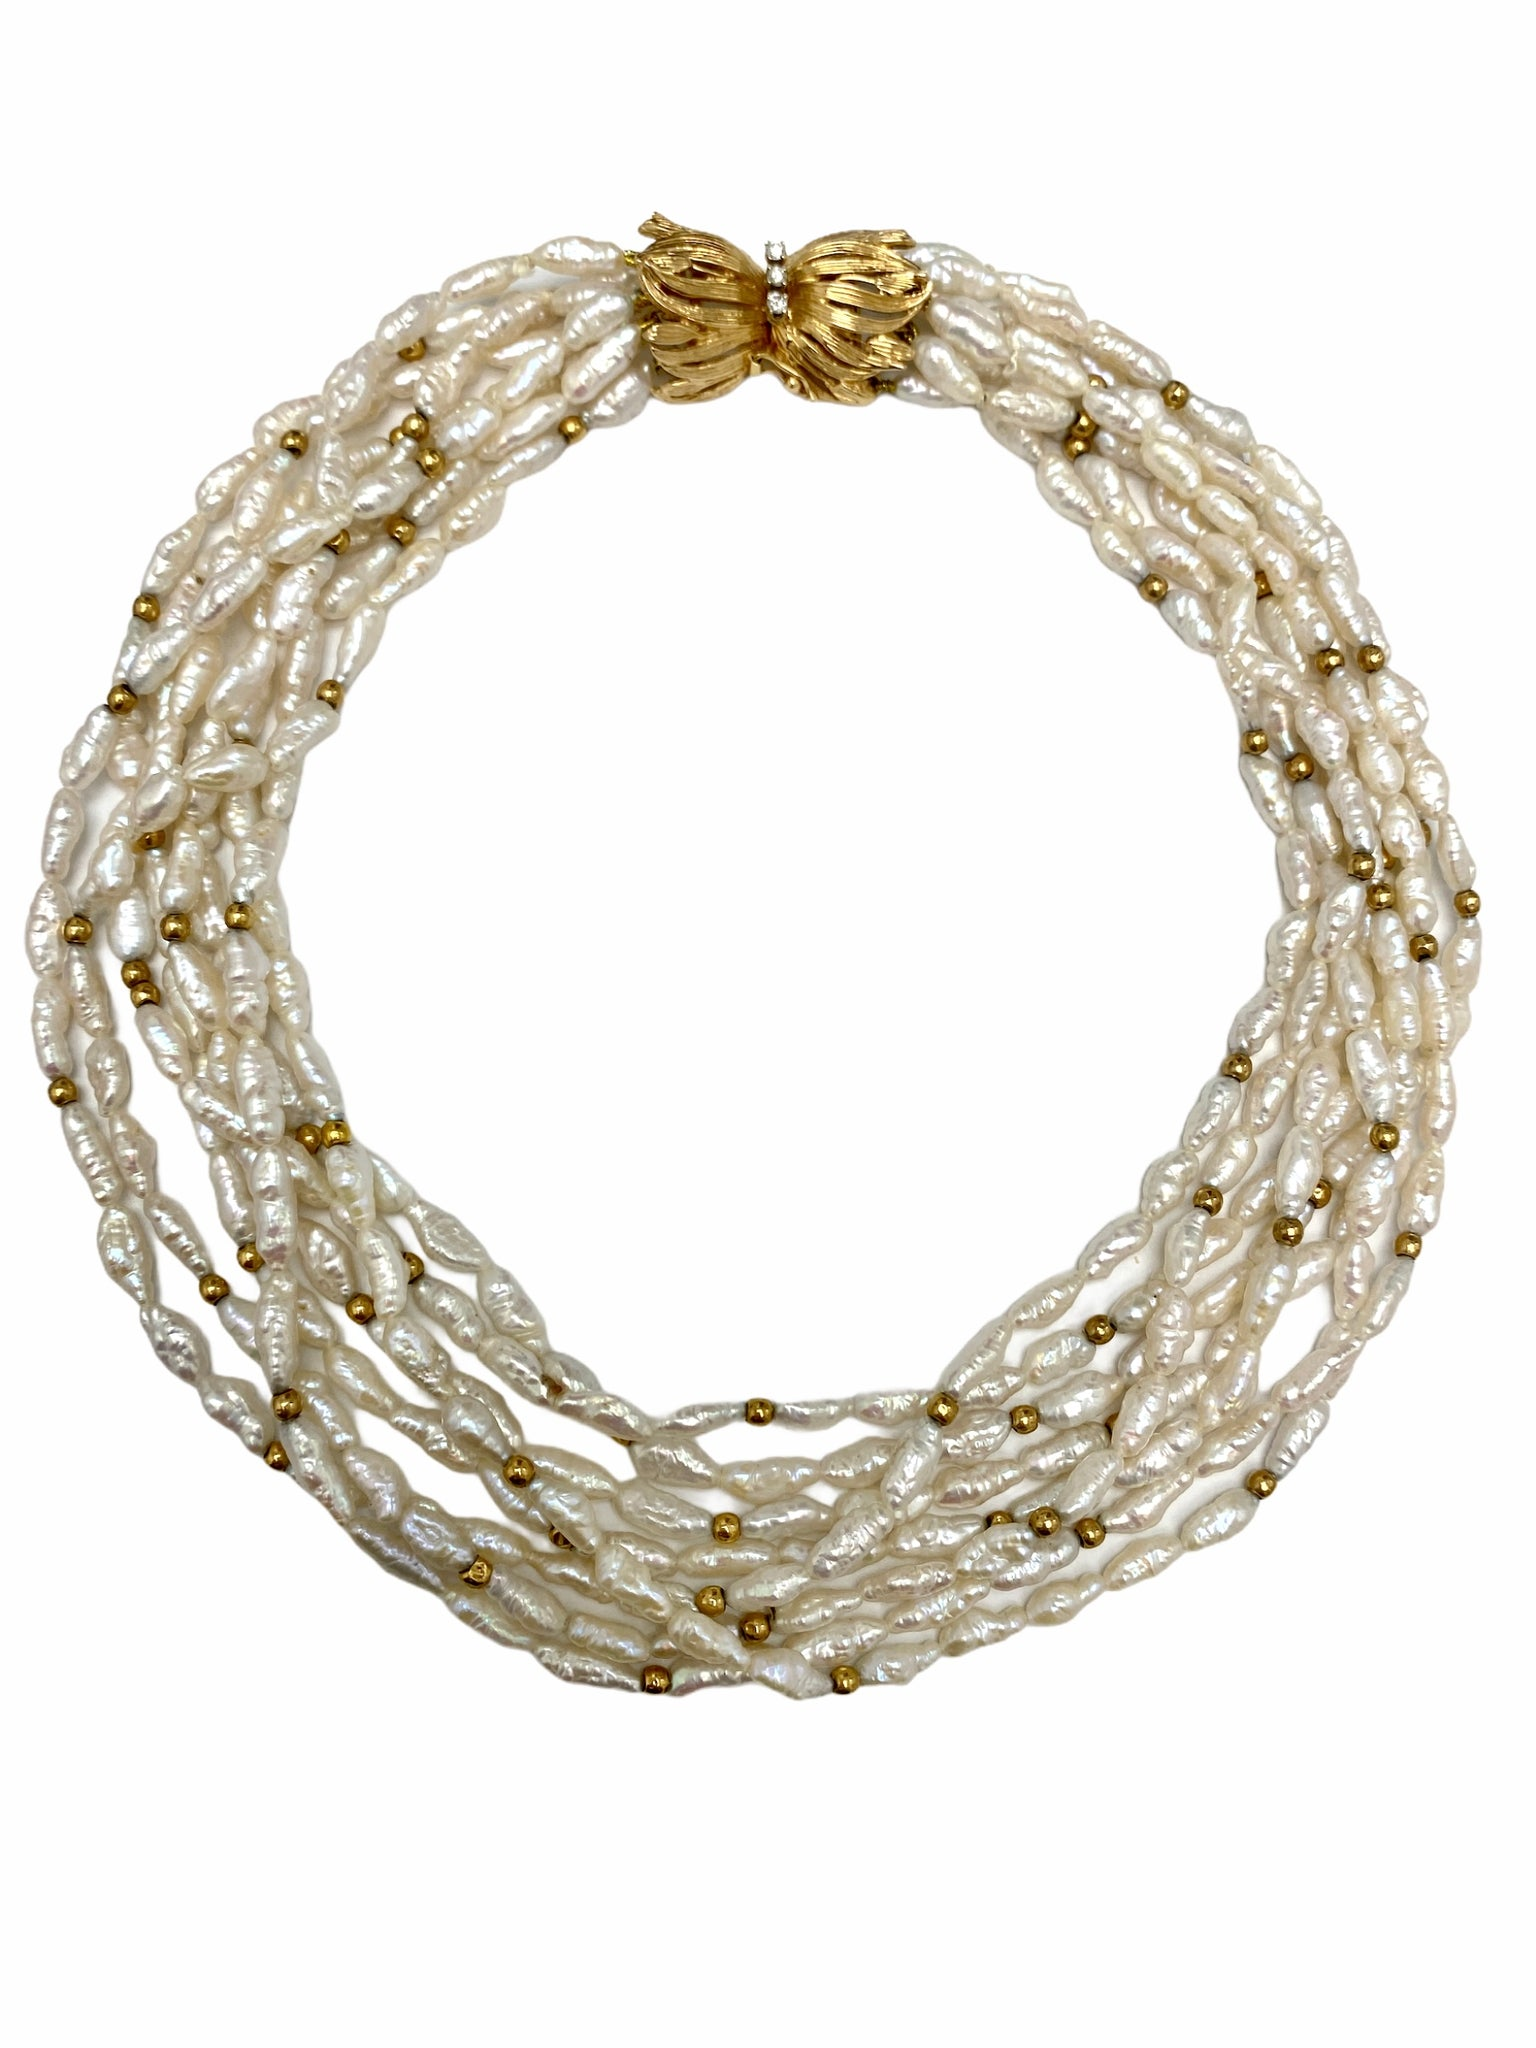 8-Strand Biwa Pearl Necklace